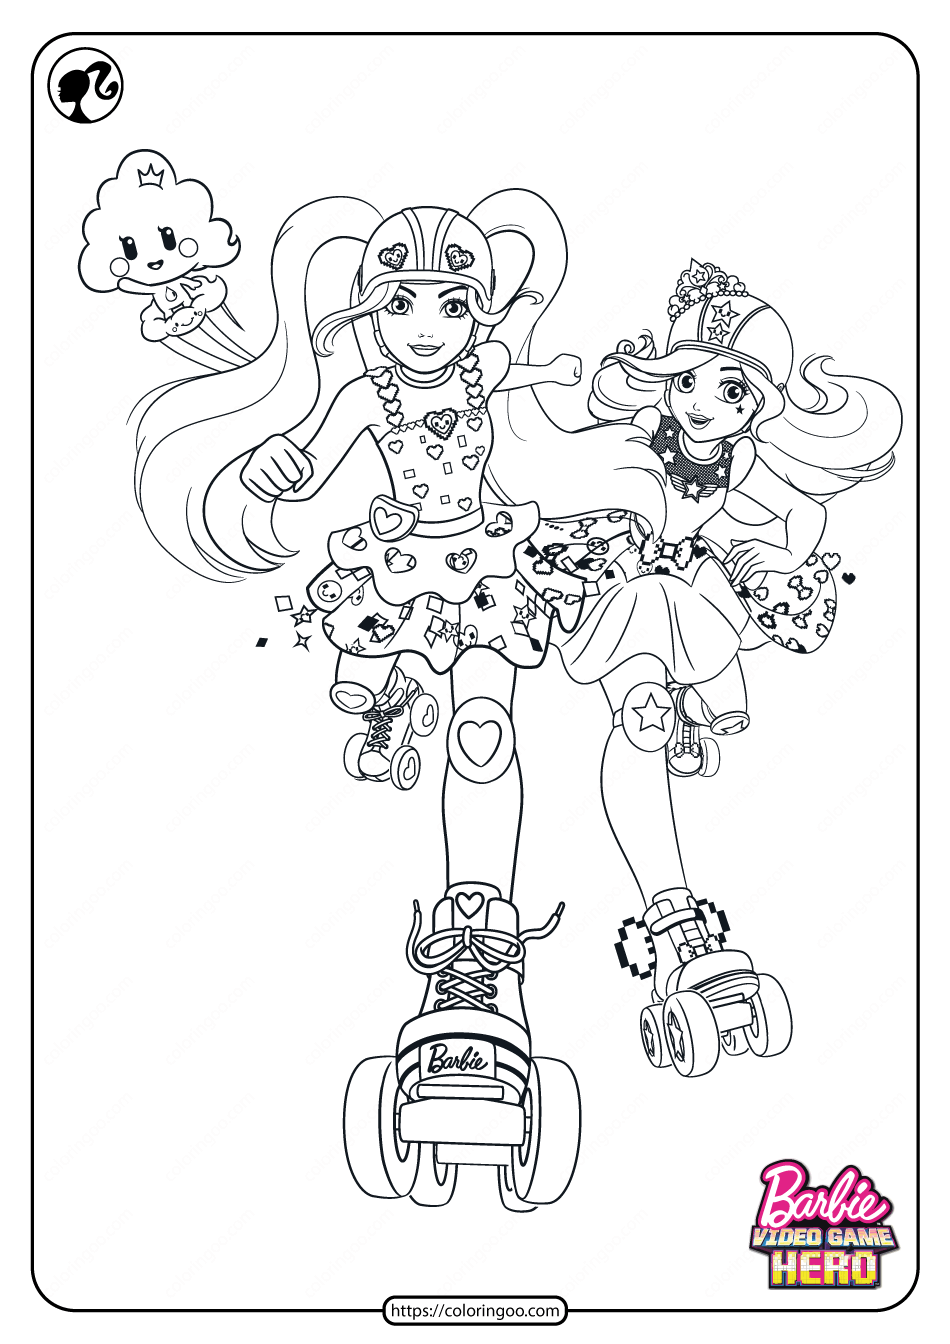 Printable Barbie Video Game Hero Coloring Pages